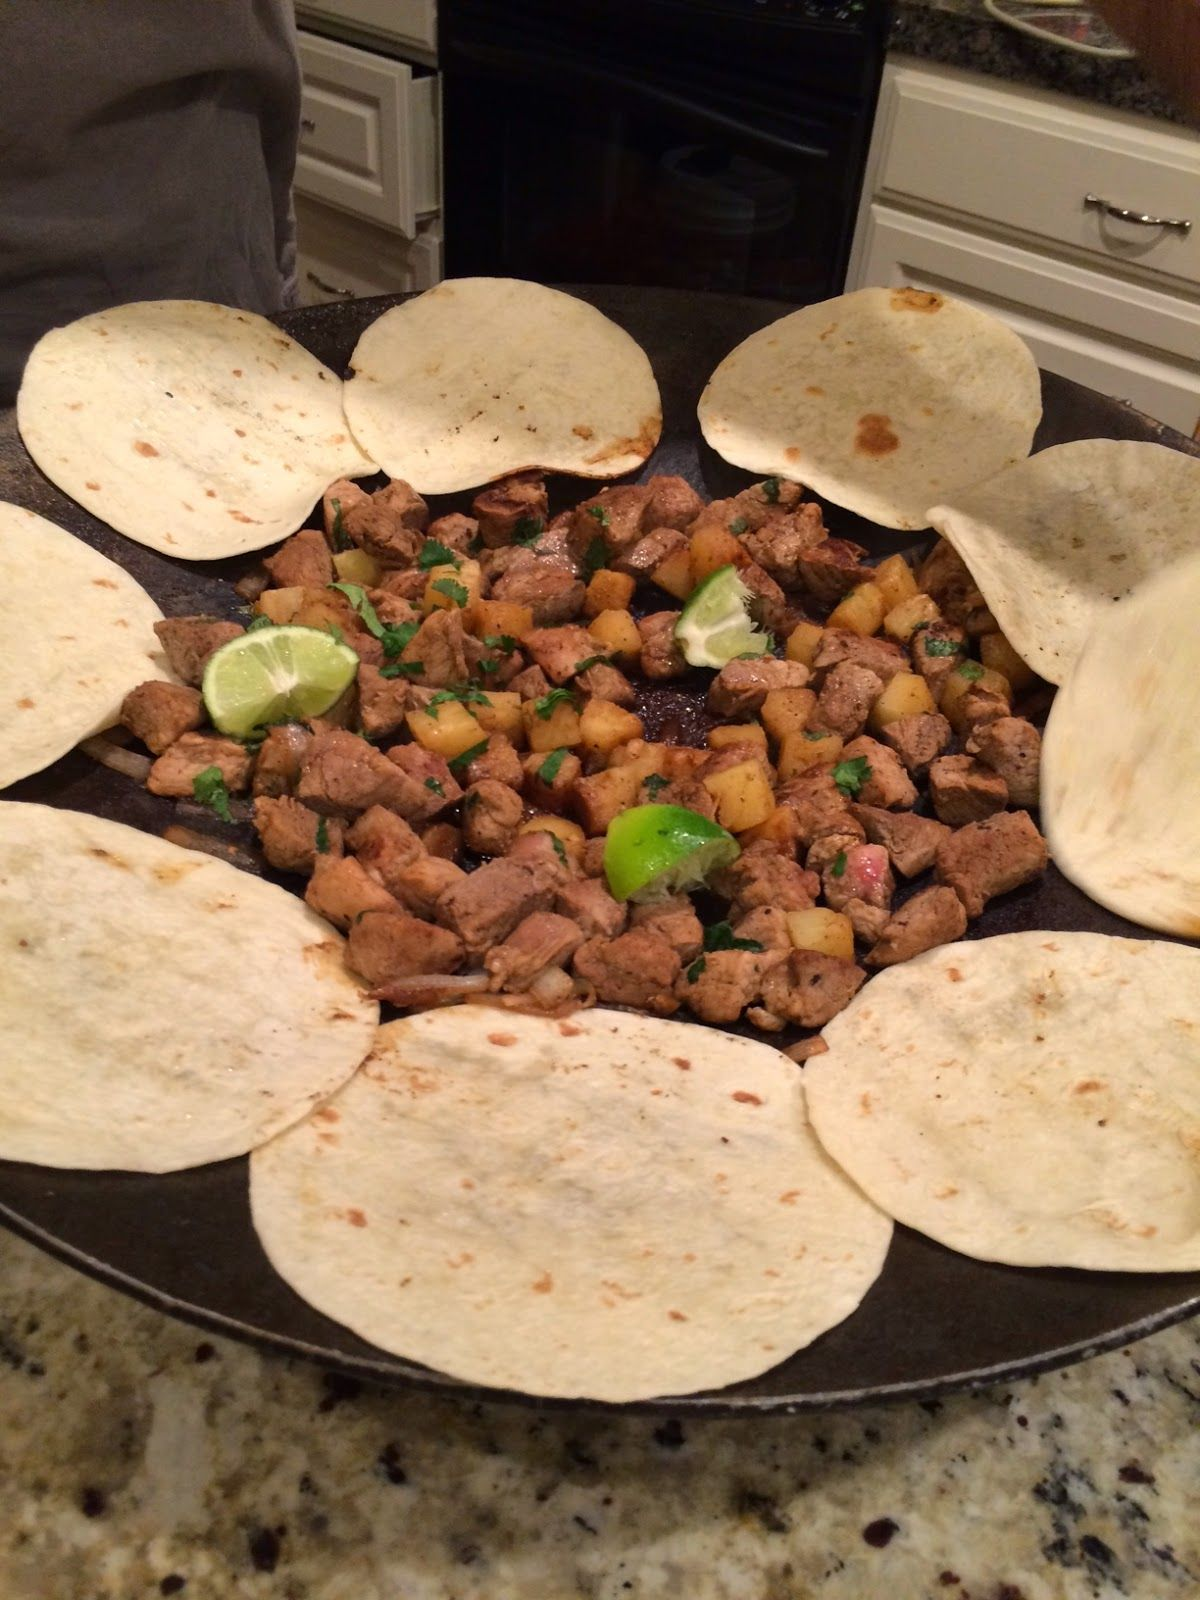 Blue Moon Disk Recipes: Spicy Pork-Pineapple Tacos | Disk ...